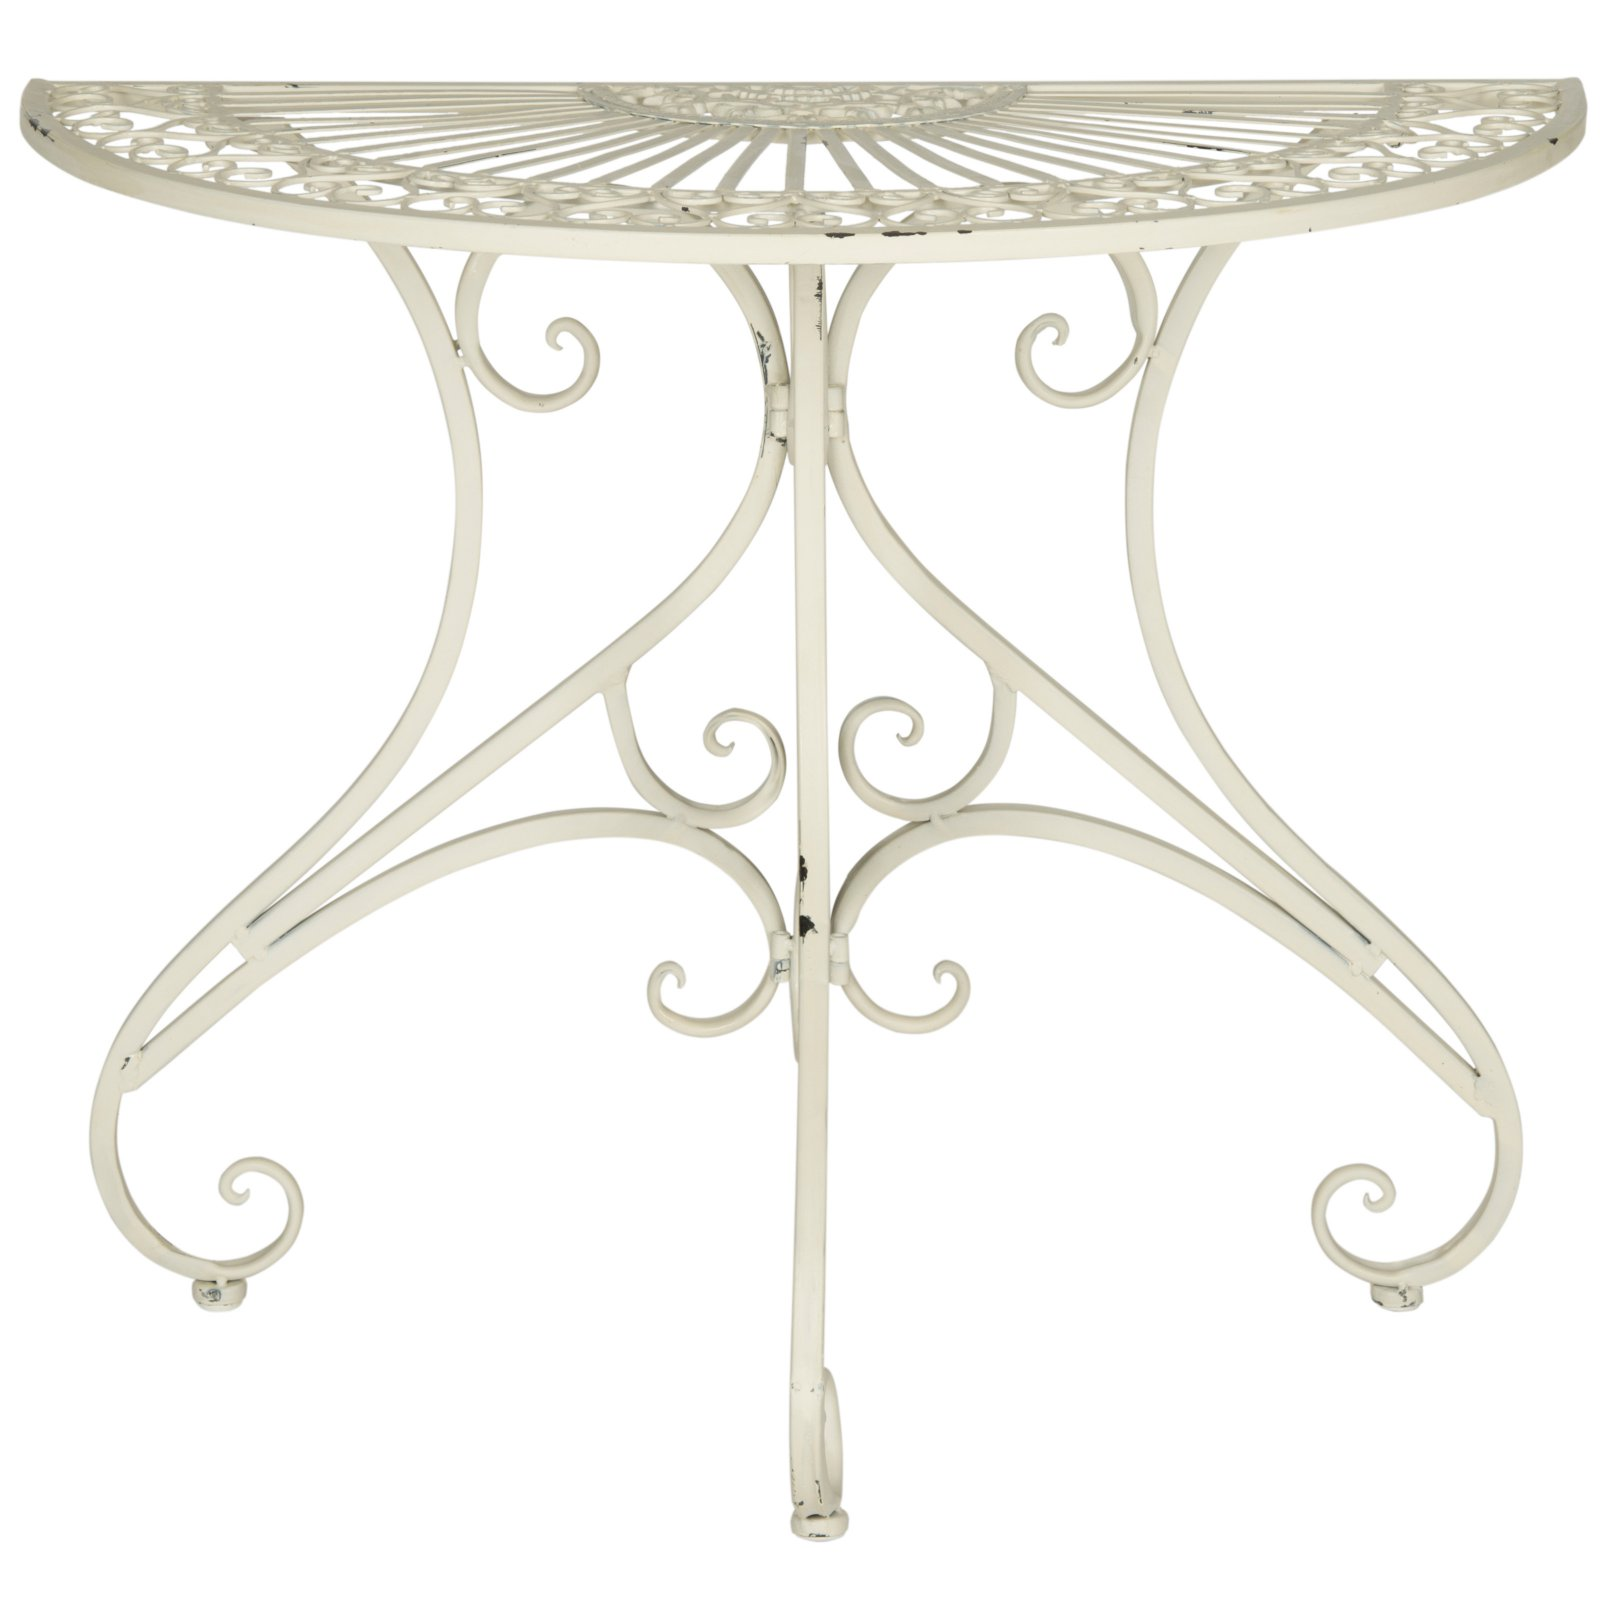 safavieh annalise outdoor accent table detail middletown patio extra wide console small round garden cover drum shaped bedside tables kitchen vanity narrow chairside trestle